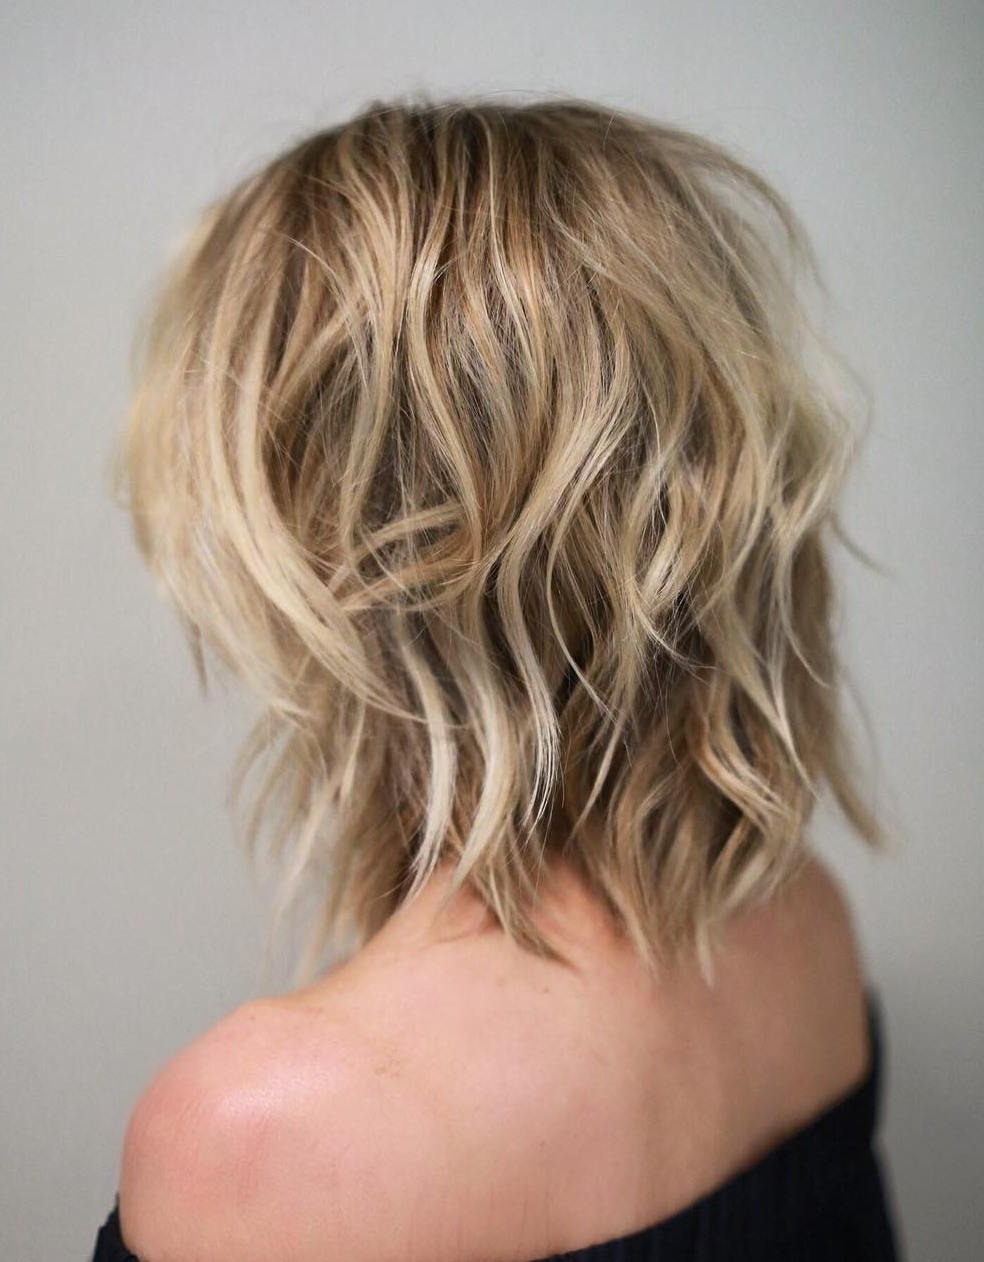 Photo Gallery Of Layered Shaggy Bob Hairstyles Viewing 6 Of 15 Photos